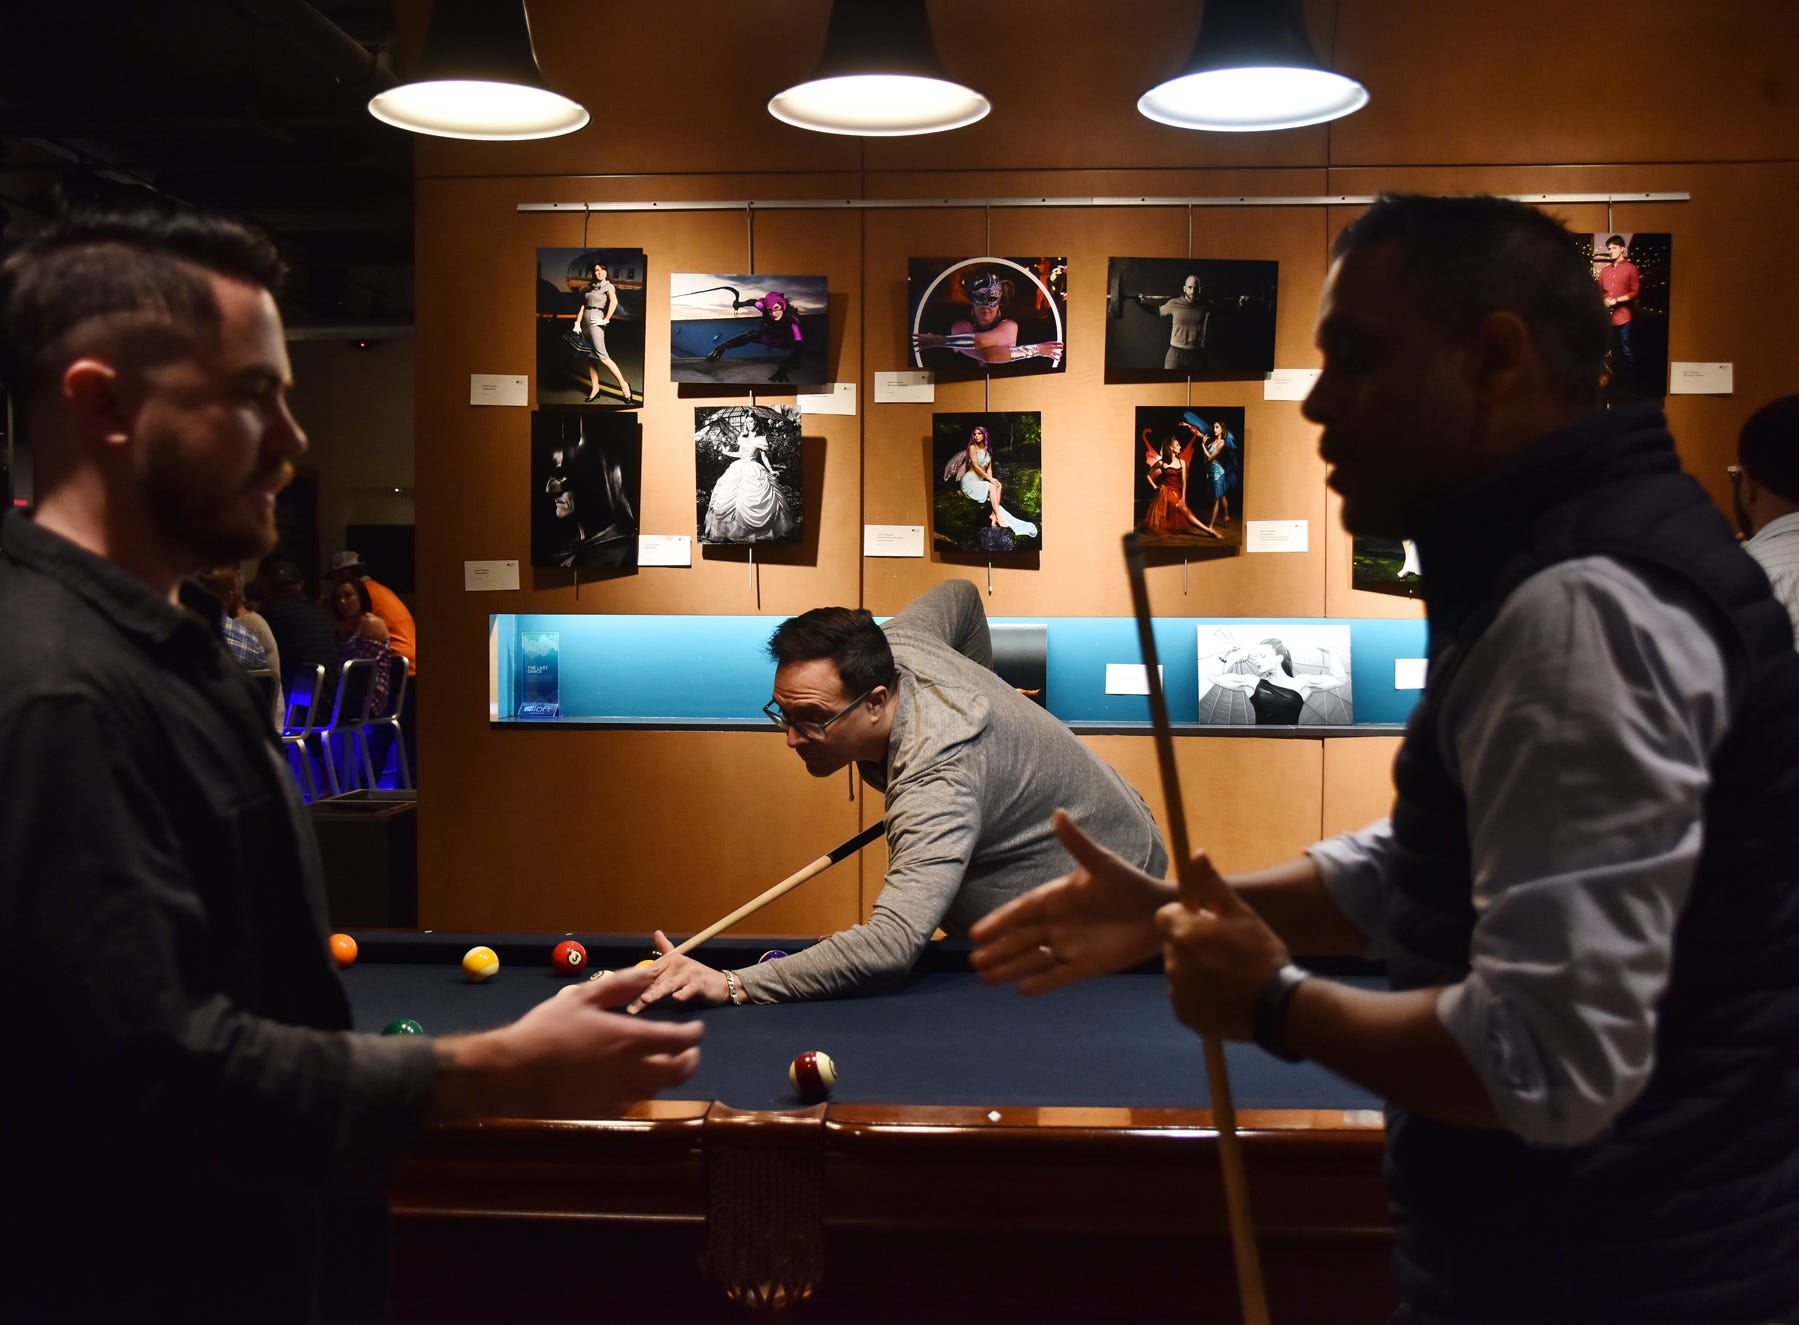 People play a game of pool in the WXYZ Lounge at Aloft in downtown Greenville.